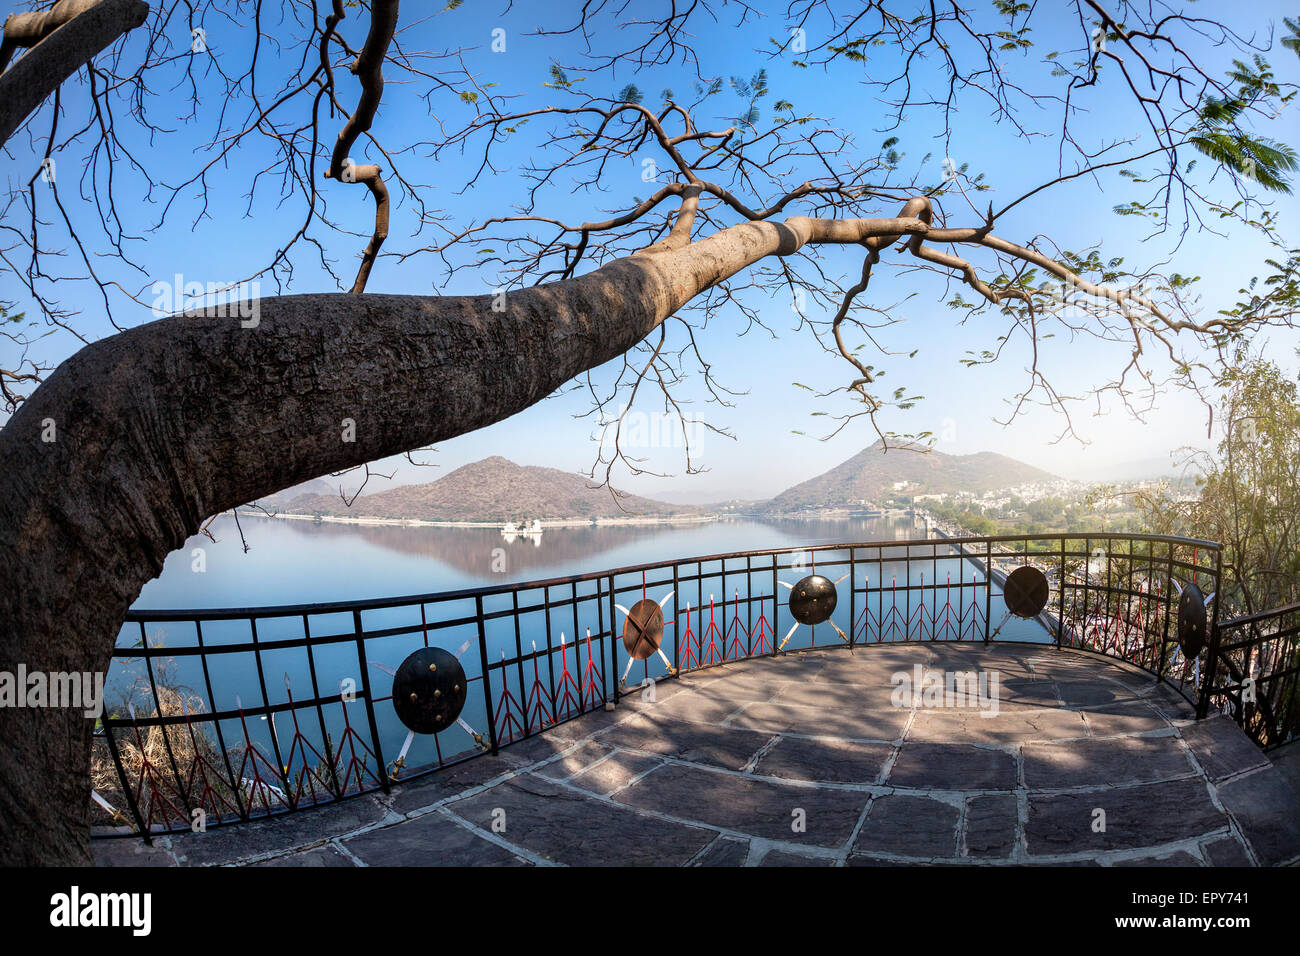 Fateh Sagar lake and Udaipur city view from the Nehru park in Rajasthan, India - Stock Image